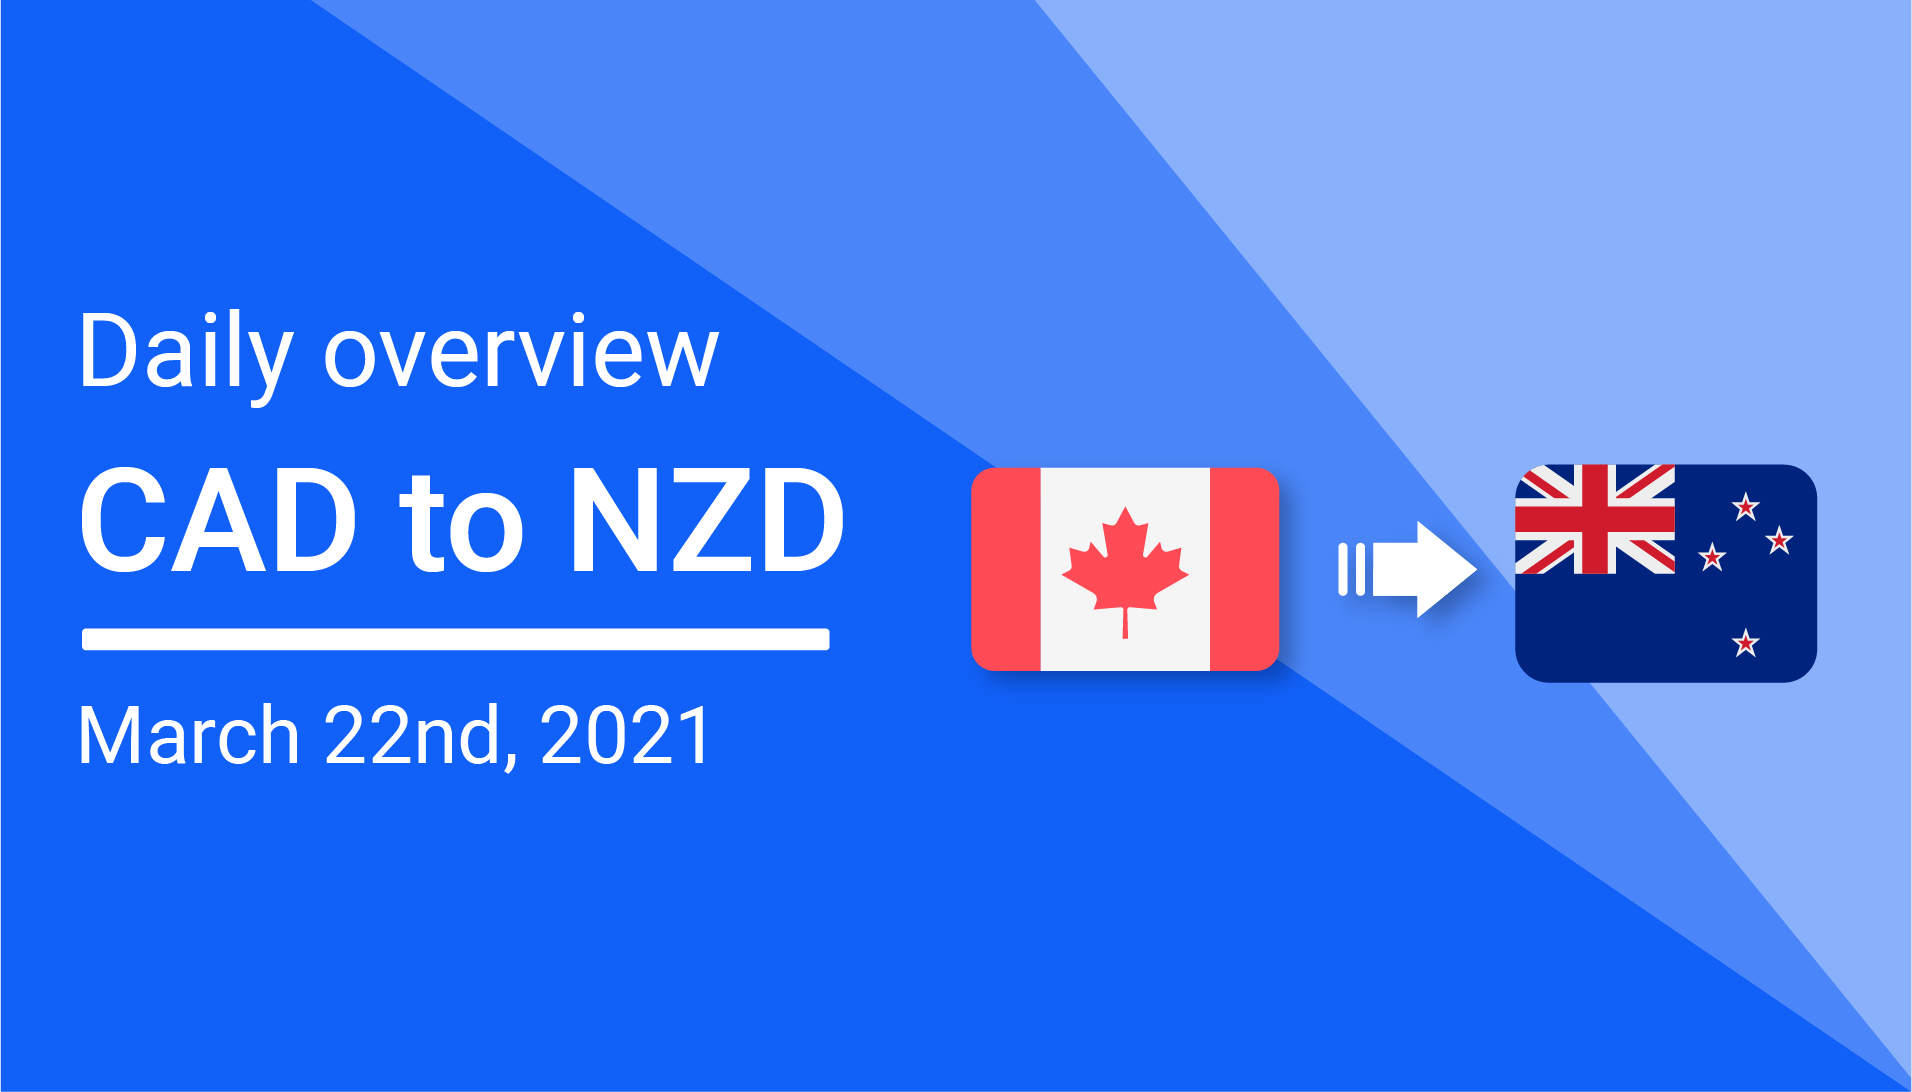 Canadian Dollar falls slightly against New Zealand Dollar on March 22nd